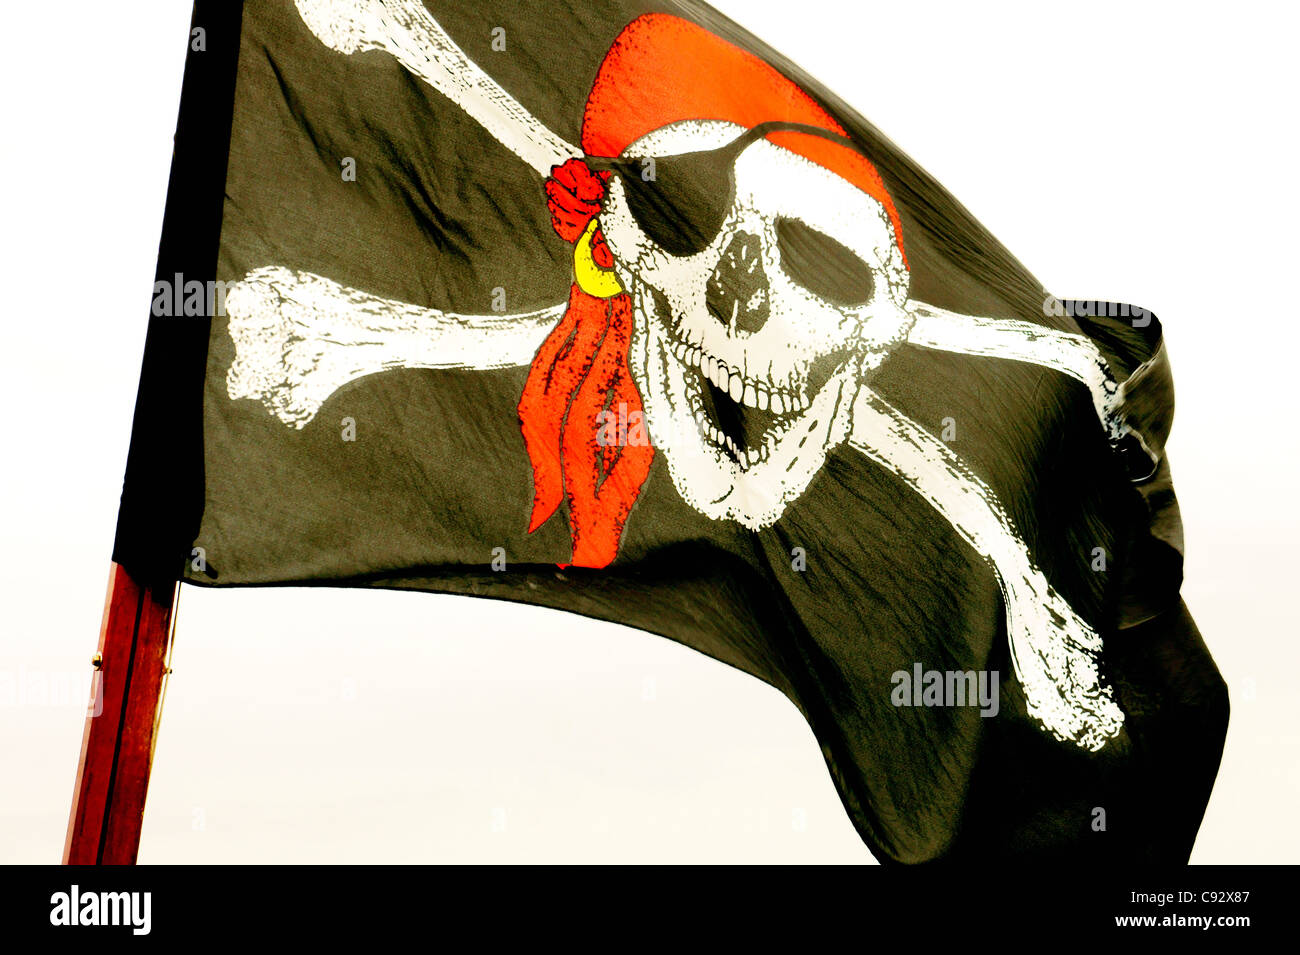 The Jolly Roger skull and cross bones pirate flag - Stock Image